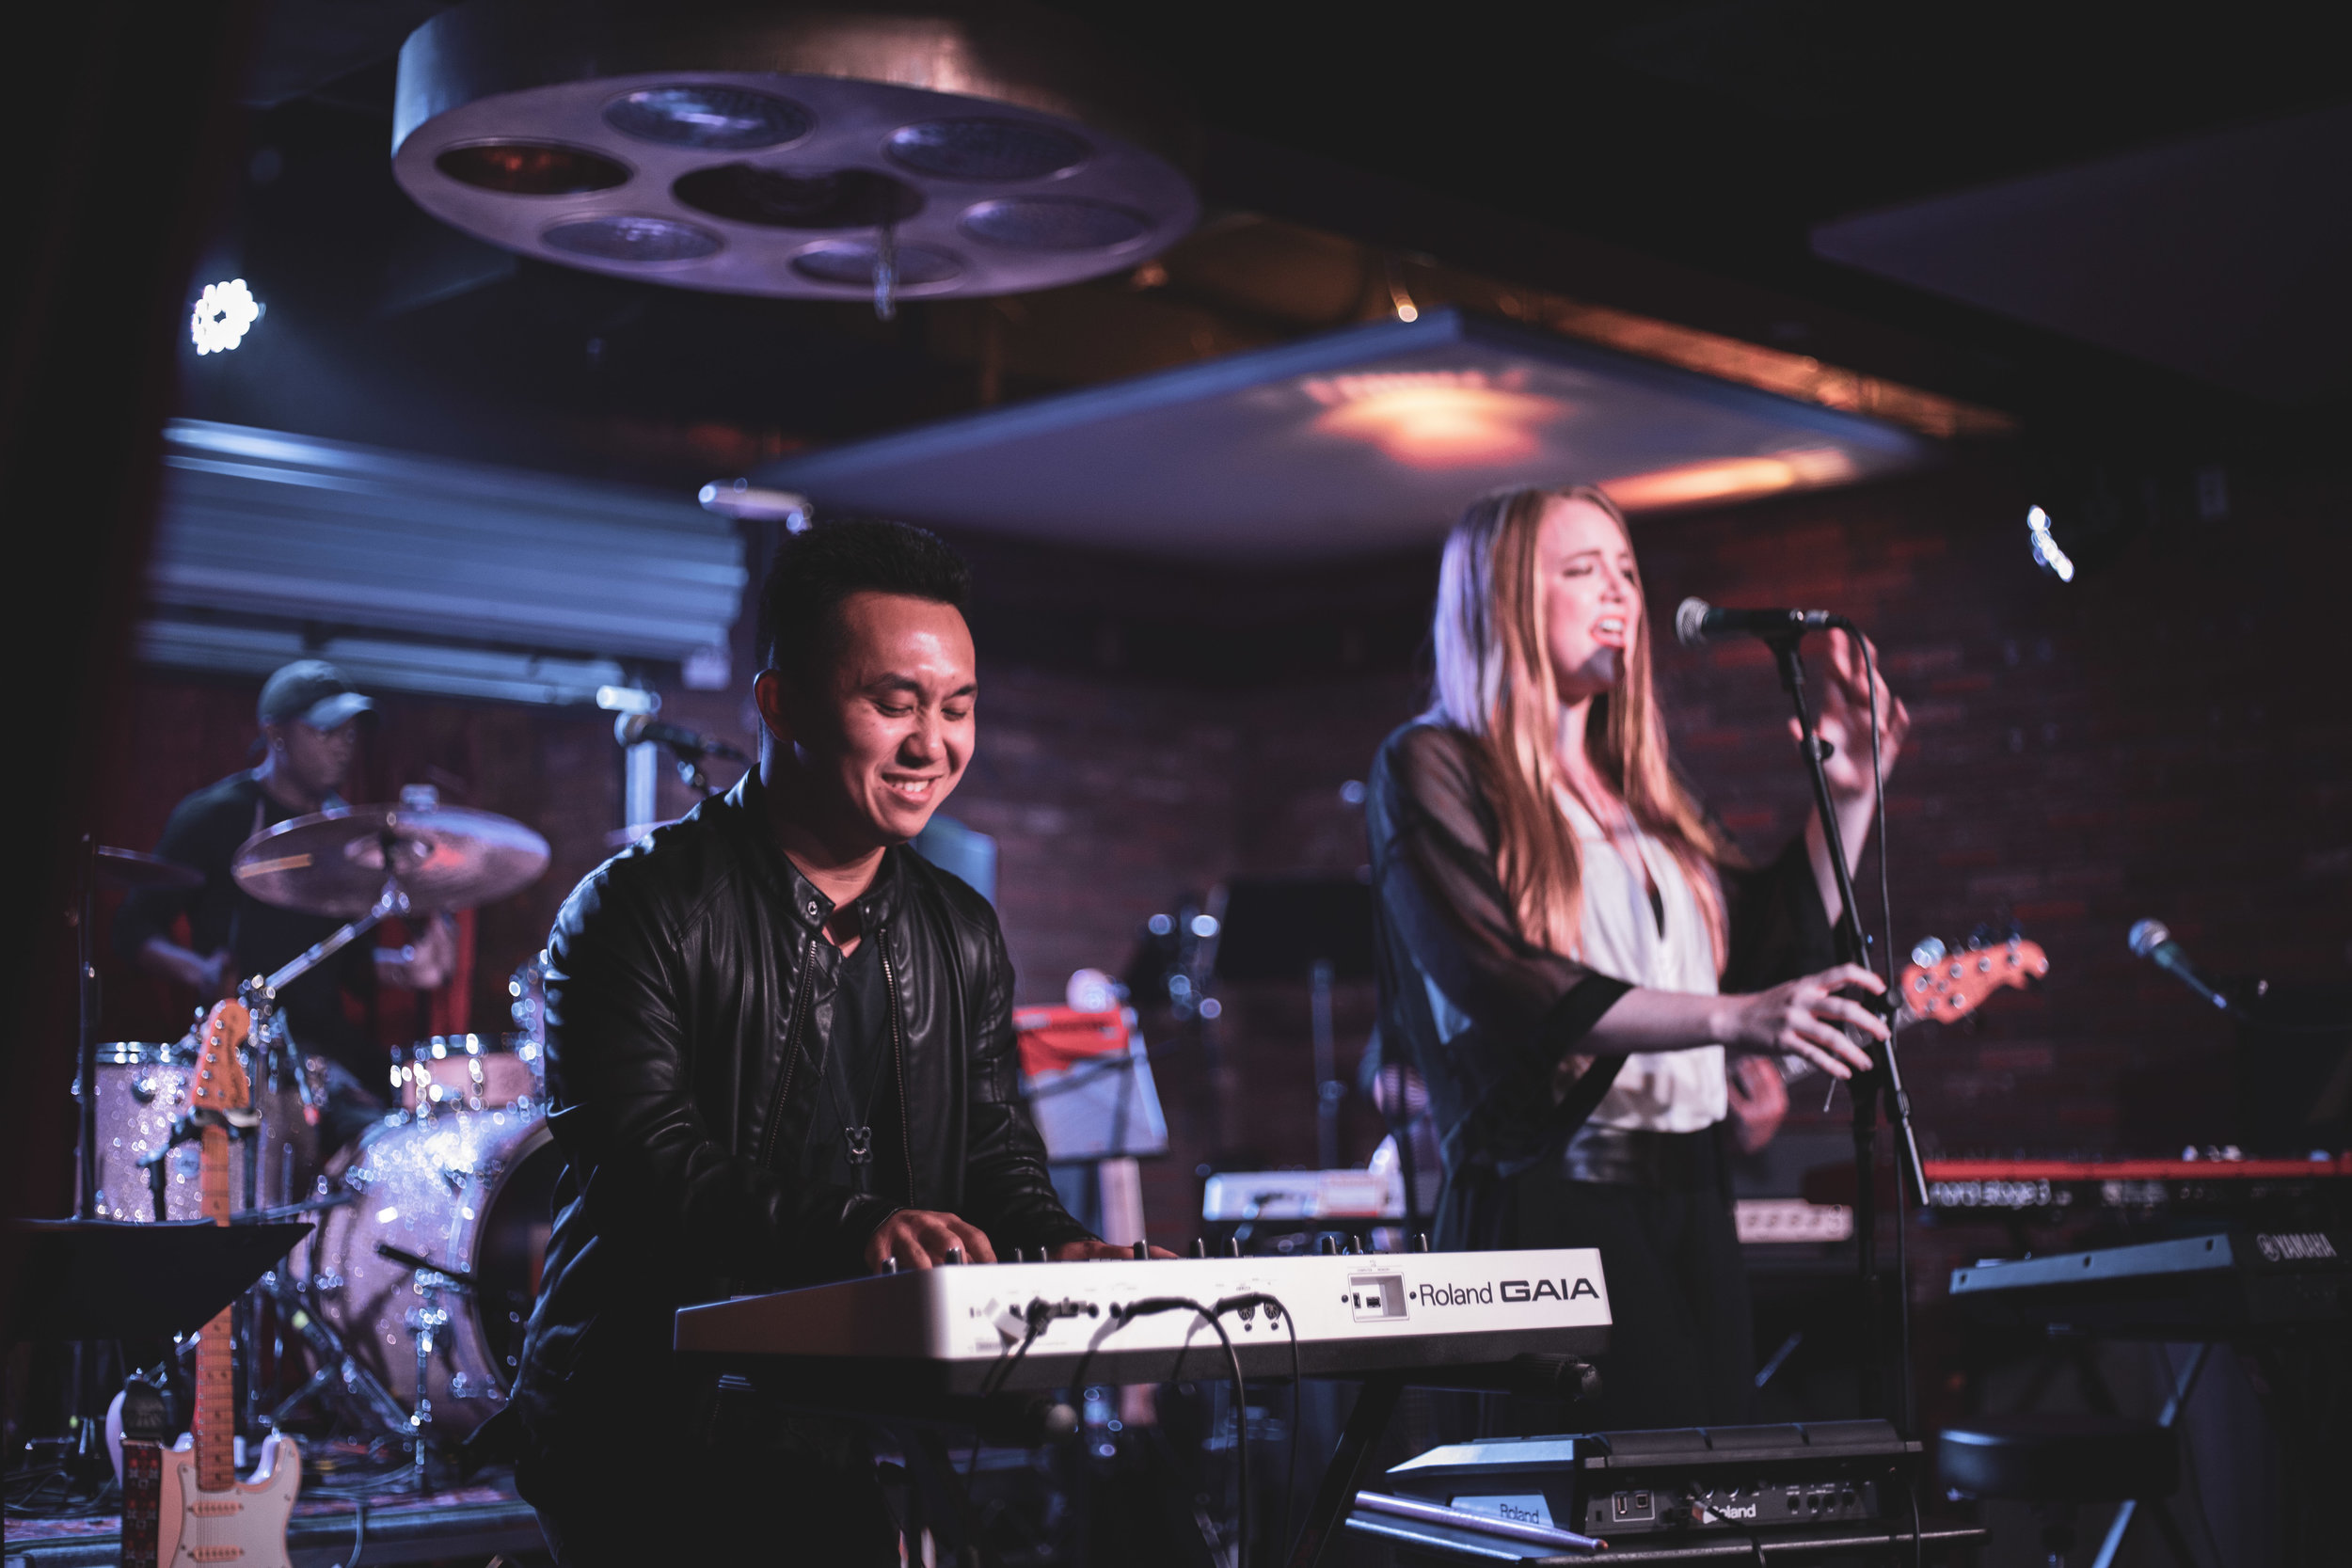 Driven by incredible sax riffs and soaring vocals, this song writing duo and their band bring their dynamic brand of pop grooves to the WAM stage for the second time.